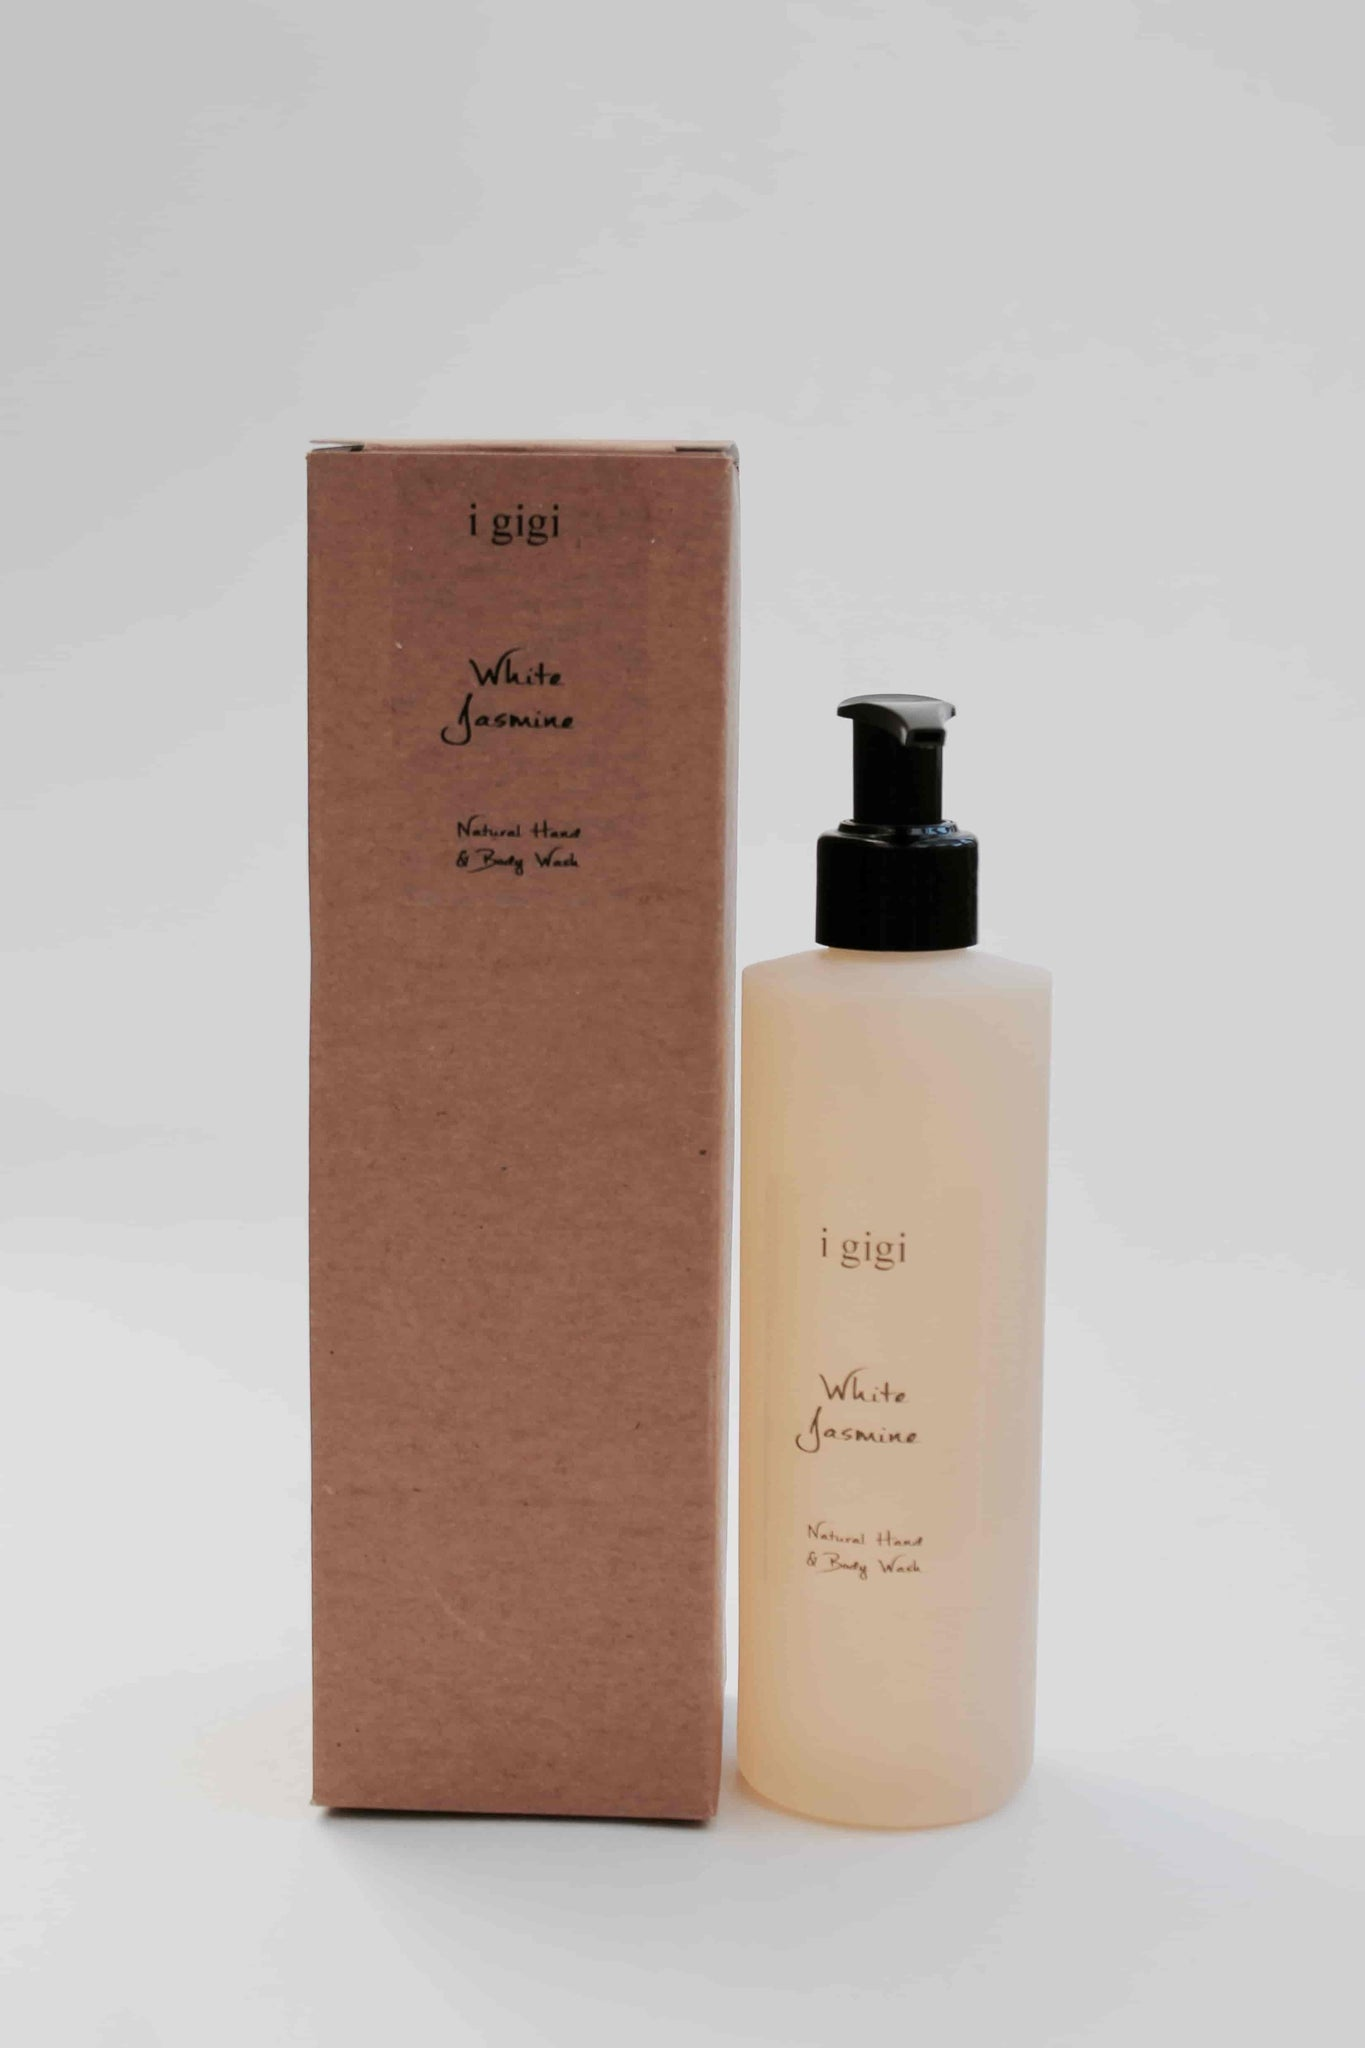 i gigi White Jasmine Natural Hand & Body Wash